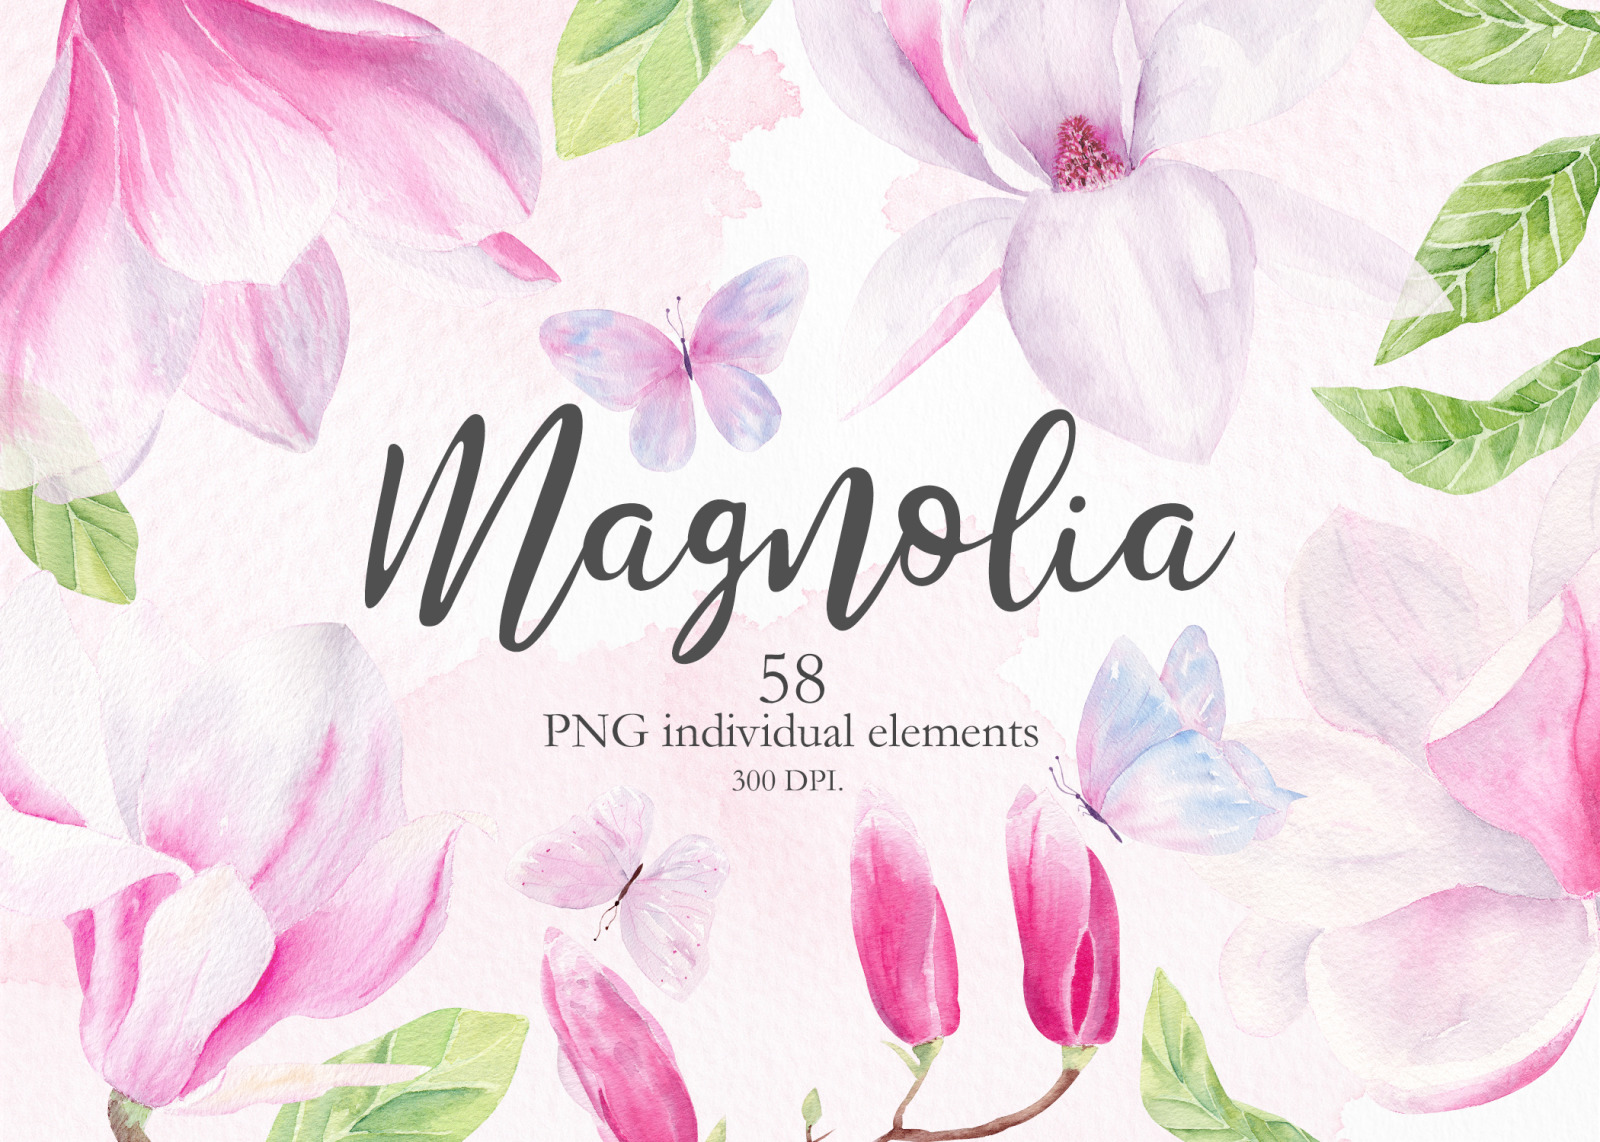 Magnolia Floral Watercolor Clipart in Illustrations on Yellow.